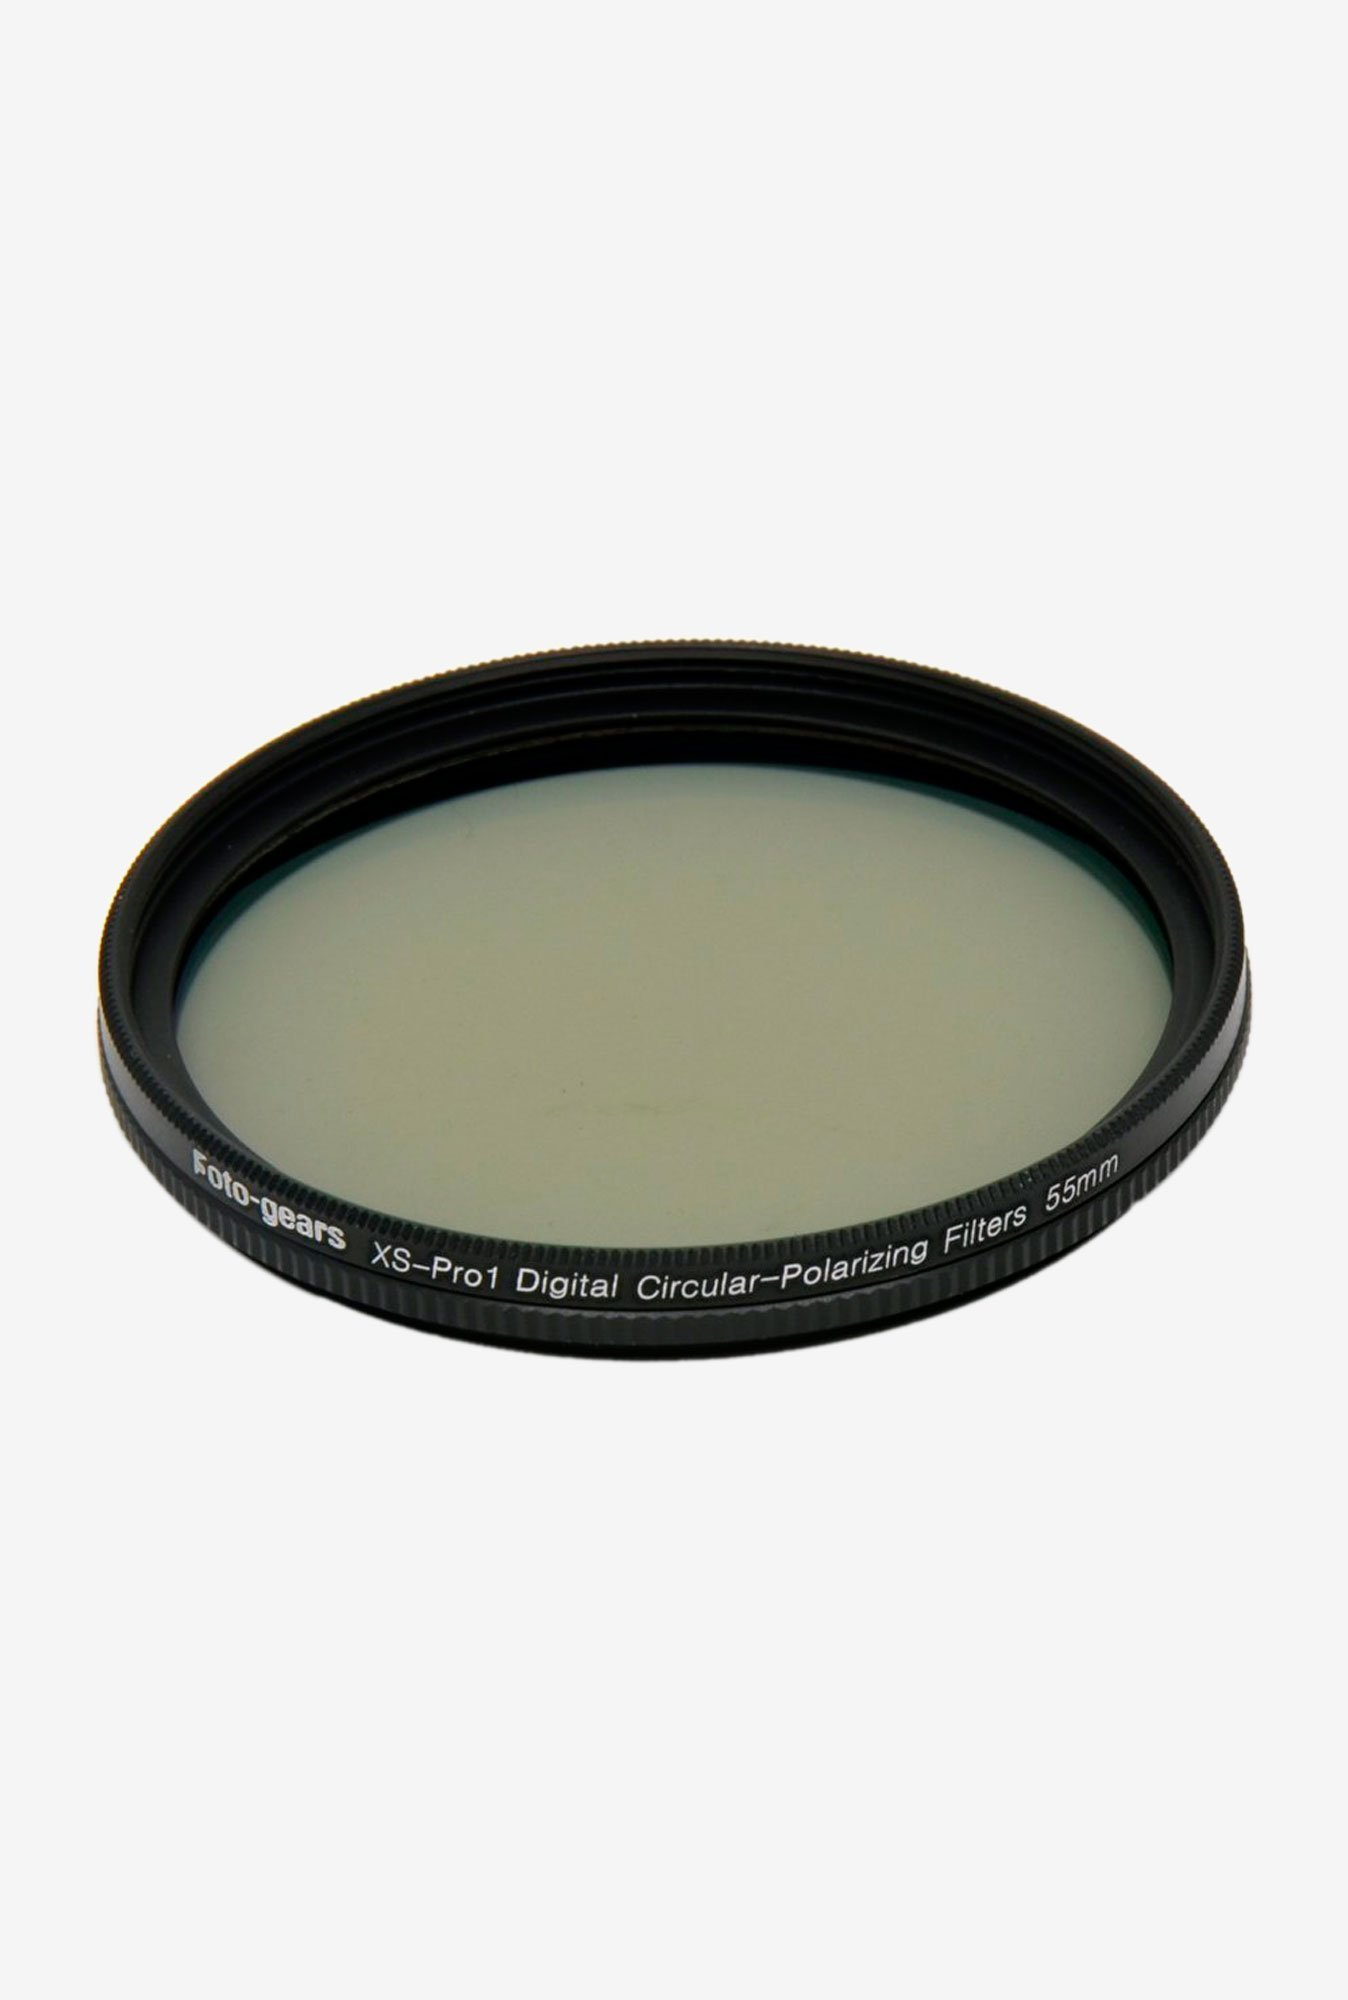 Mesenltd Foto-gears 55mm MC CPL Polarizing Filter Black